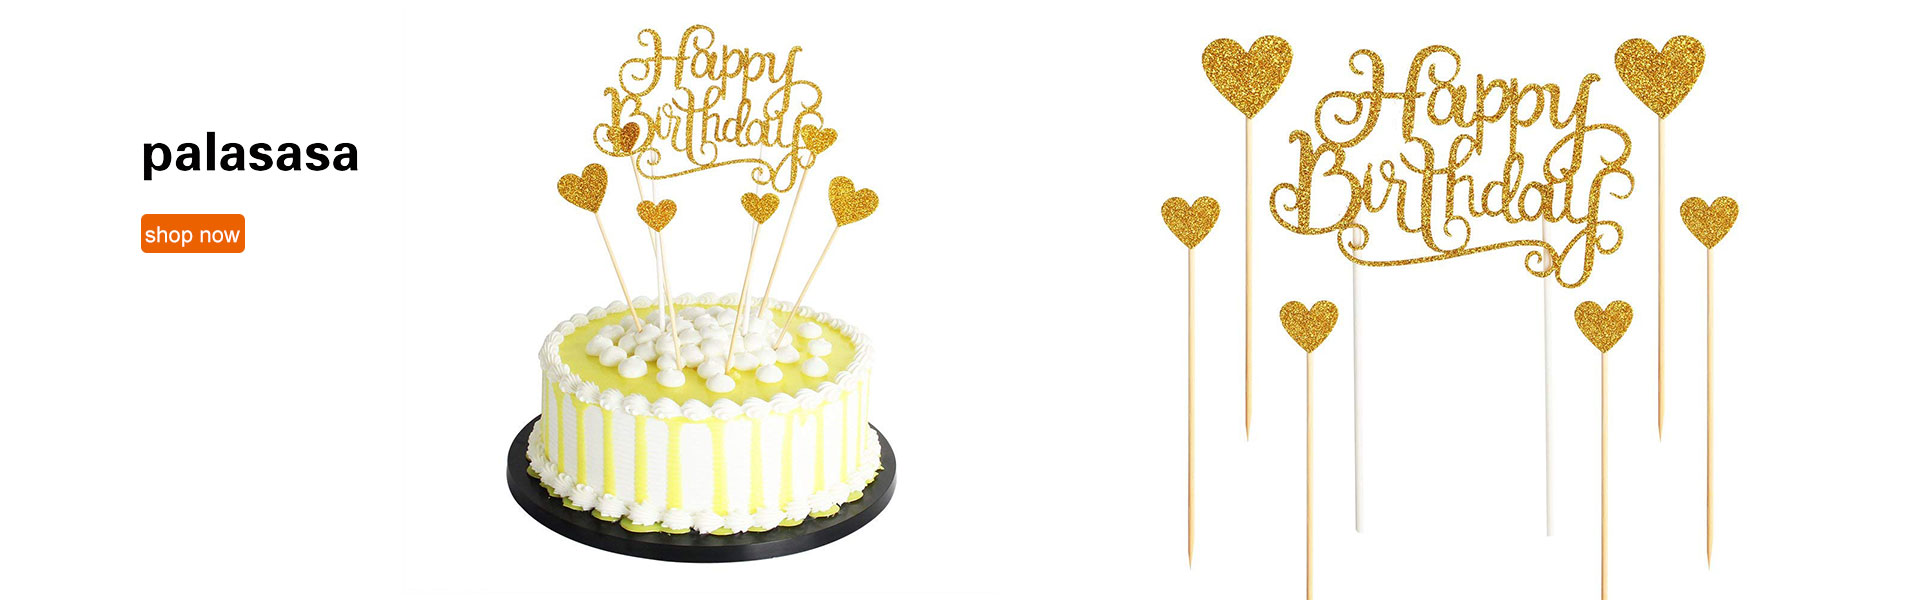 PALASASA Happy Birthday Cake Toppers Glod Glitter Letters Happy Birthday and Love Star,Party Decor Decorations,Set of 7